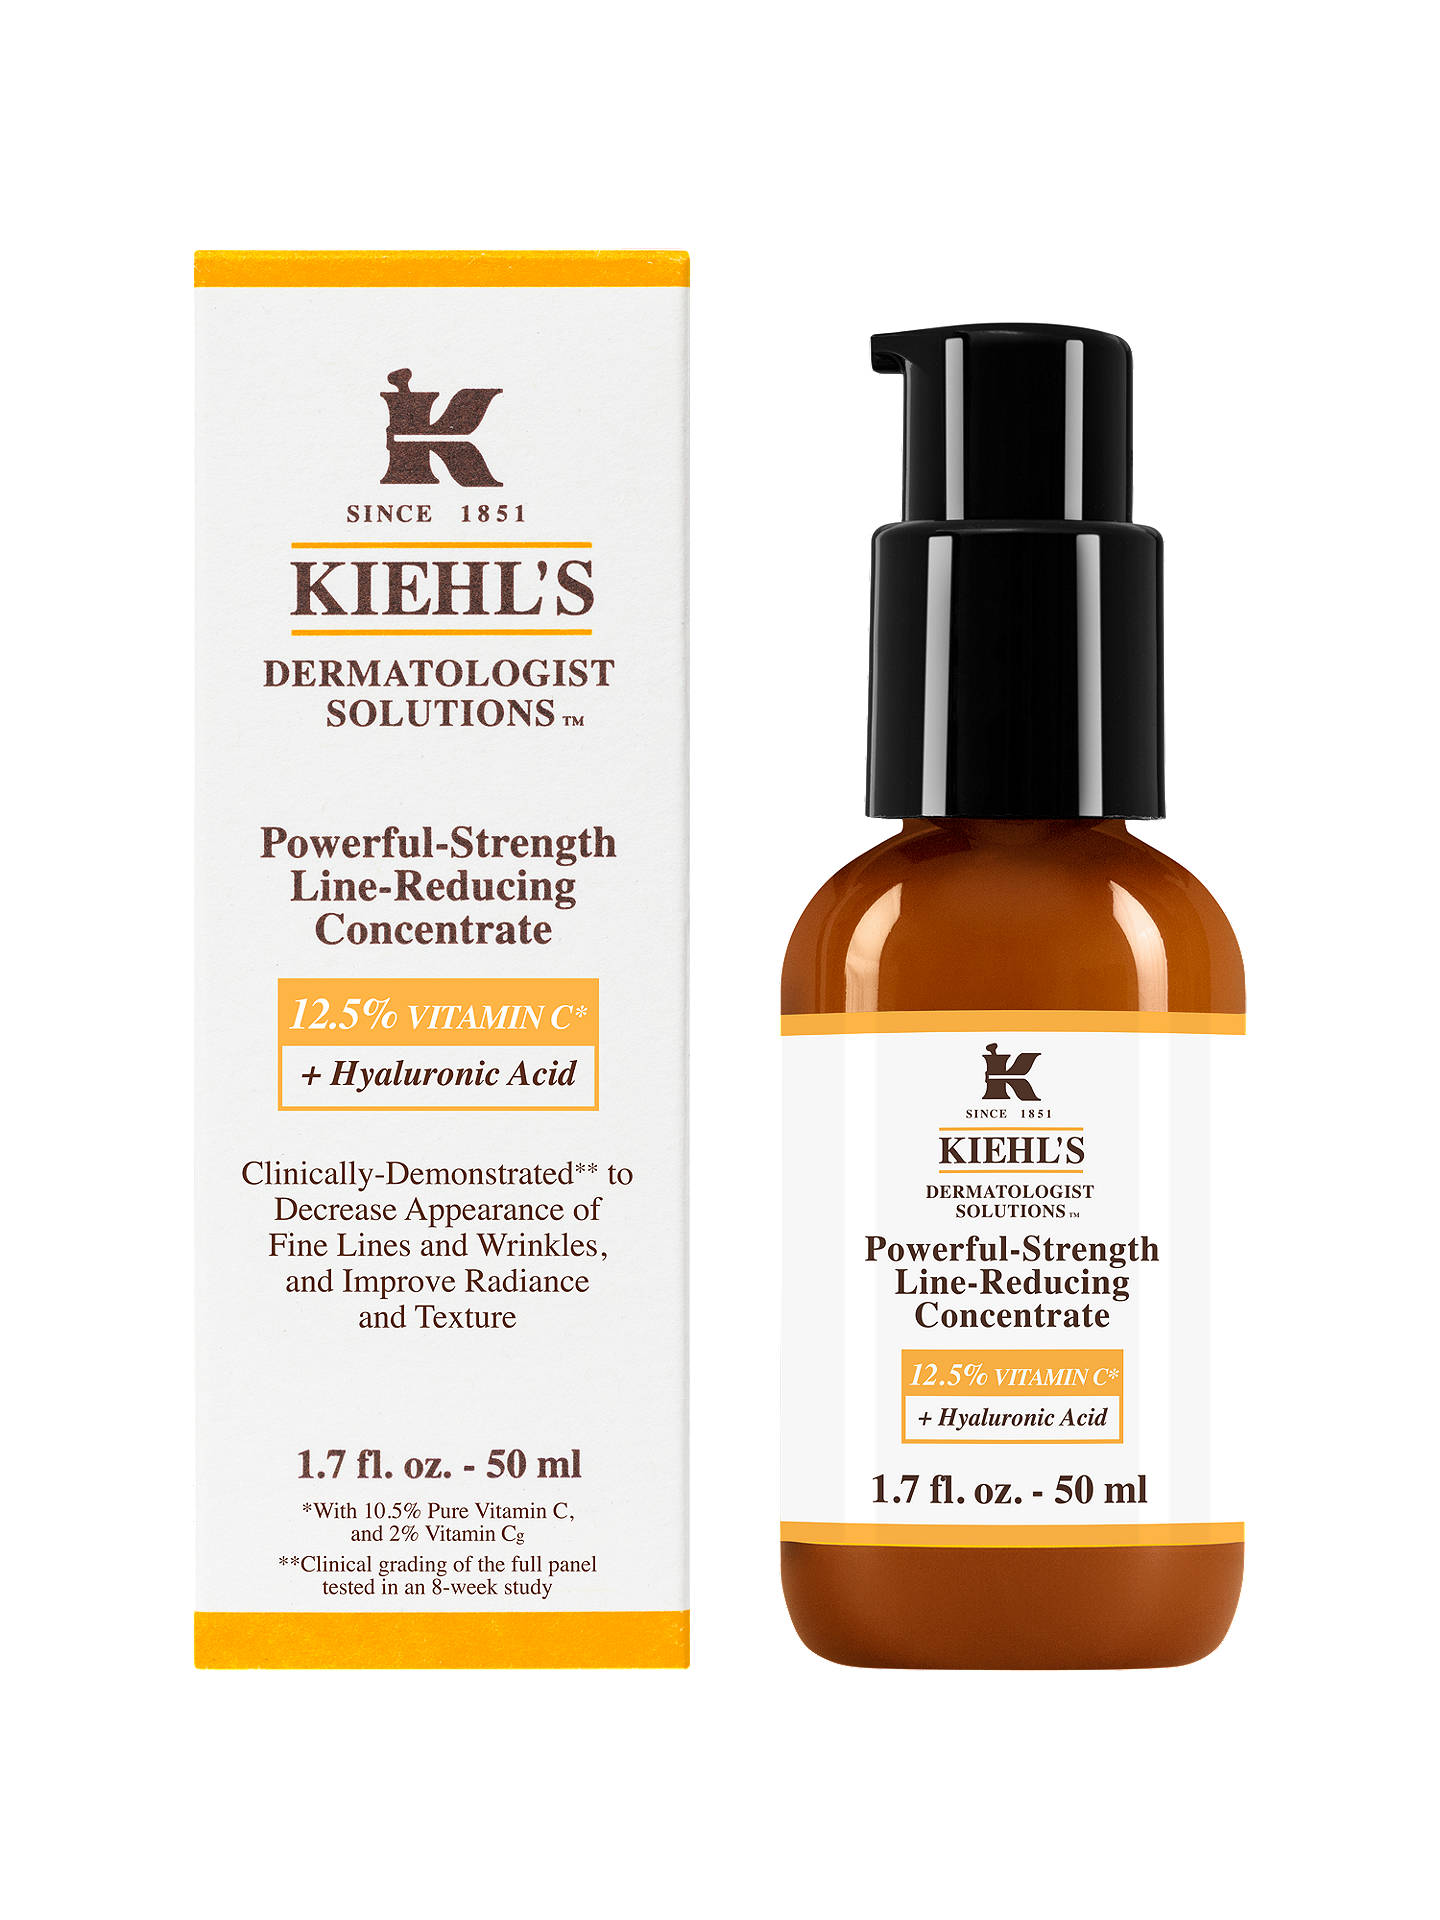 KIEHL'S Powerful Strength Line Reducing Concentrate Vit C + Hyaluronic Acid